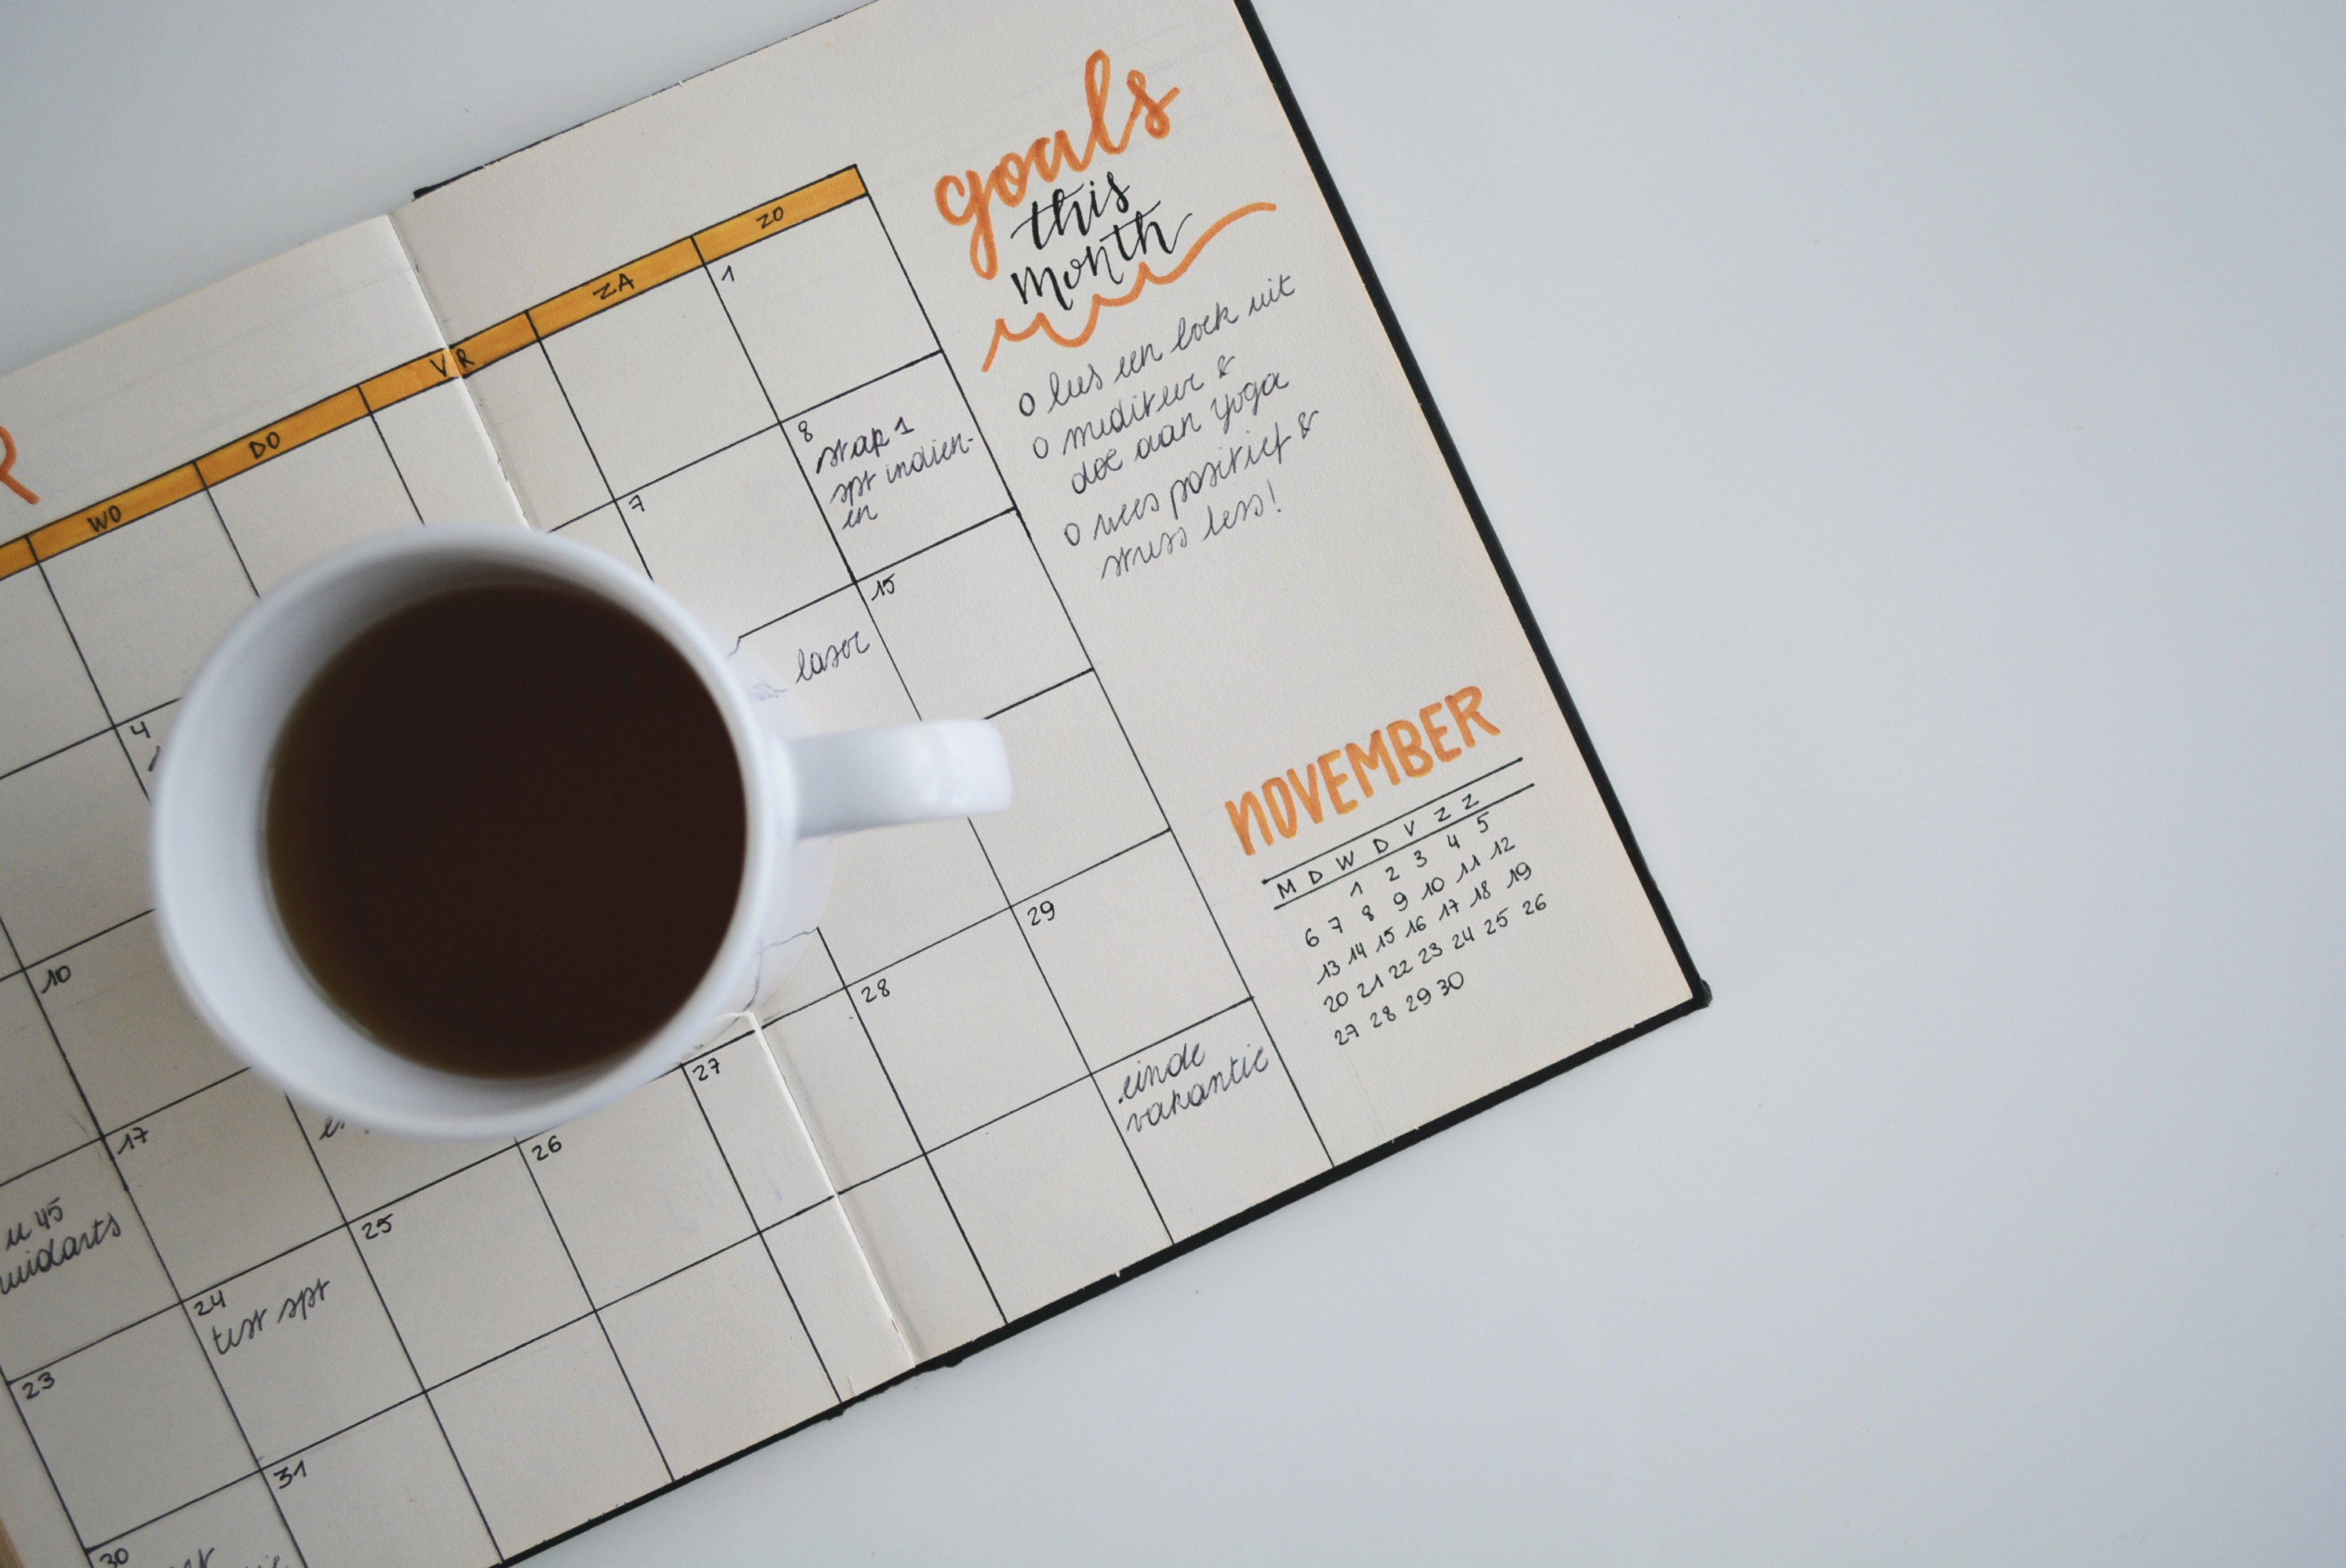 A picture of a cup of coffee and a calendar